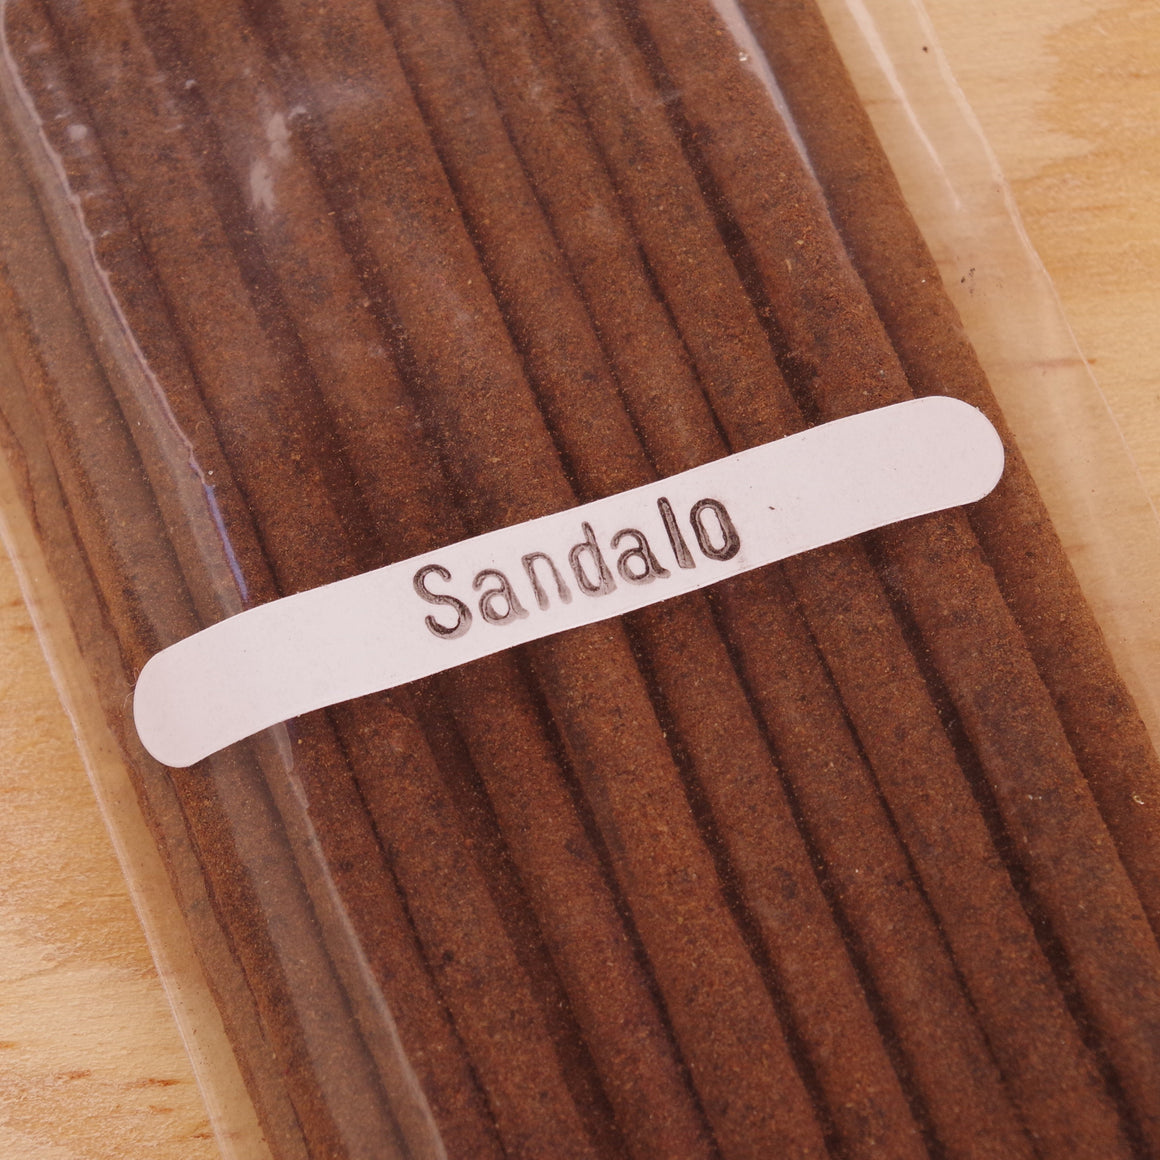 20 sticks Sandalwood Incense Handrolled in Mexico Long Duration 1.5 hours